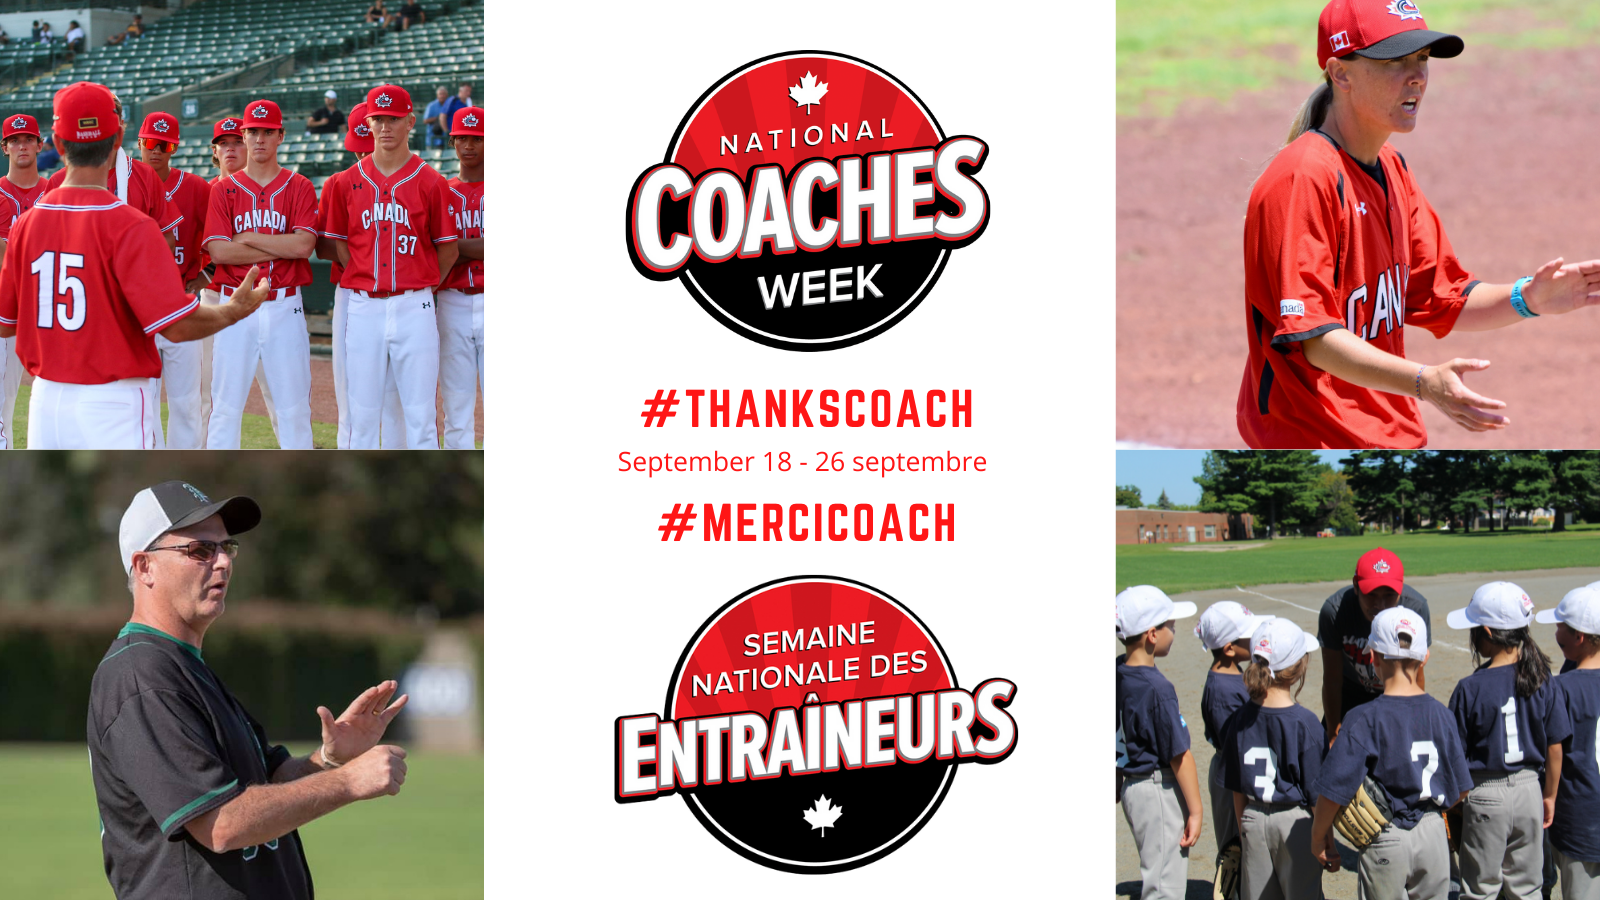 Celebrate National Coaches Week from September 18-26